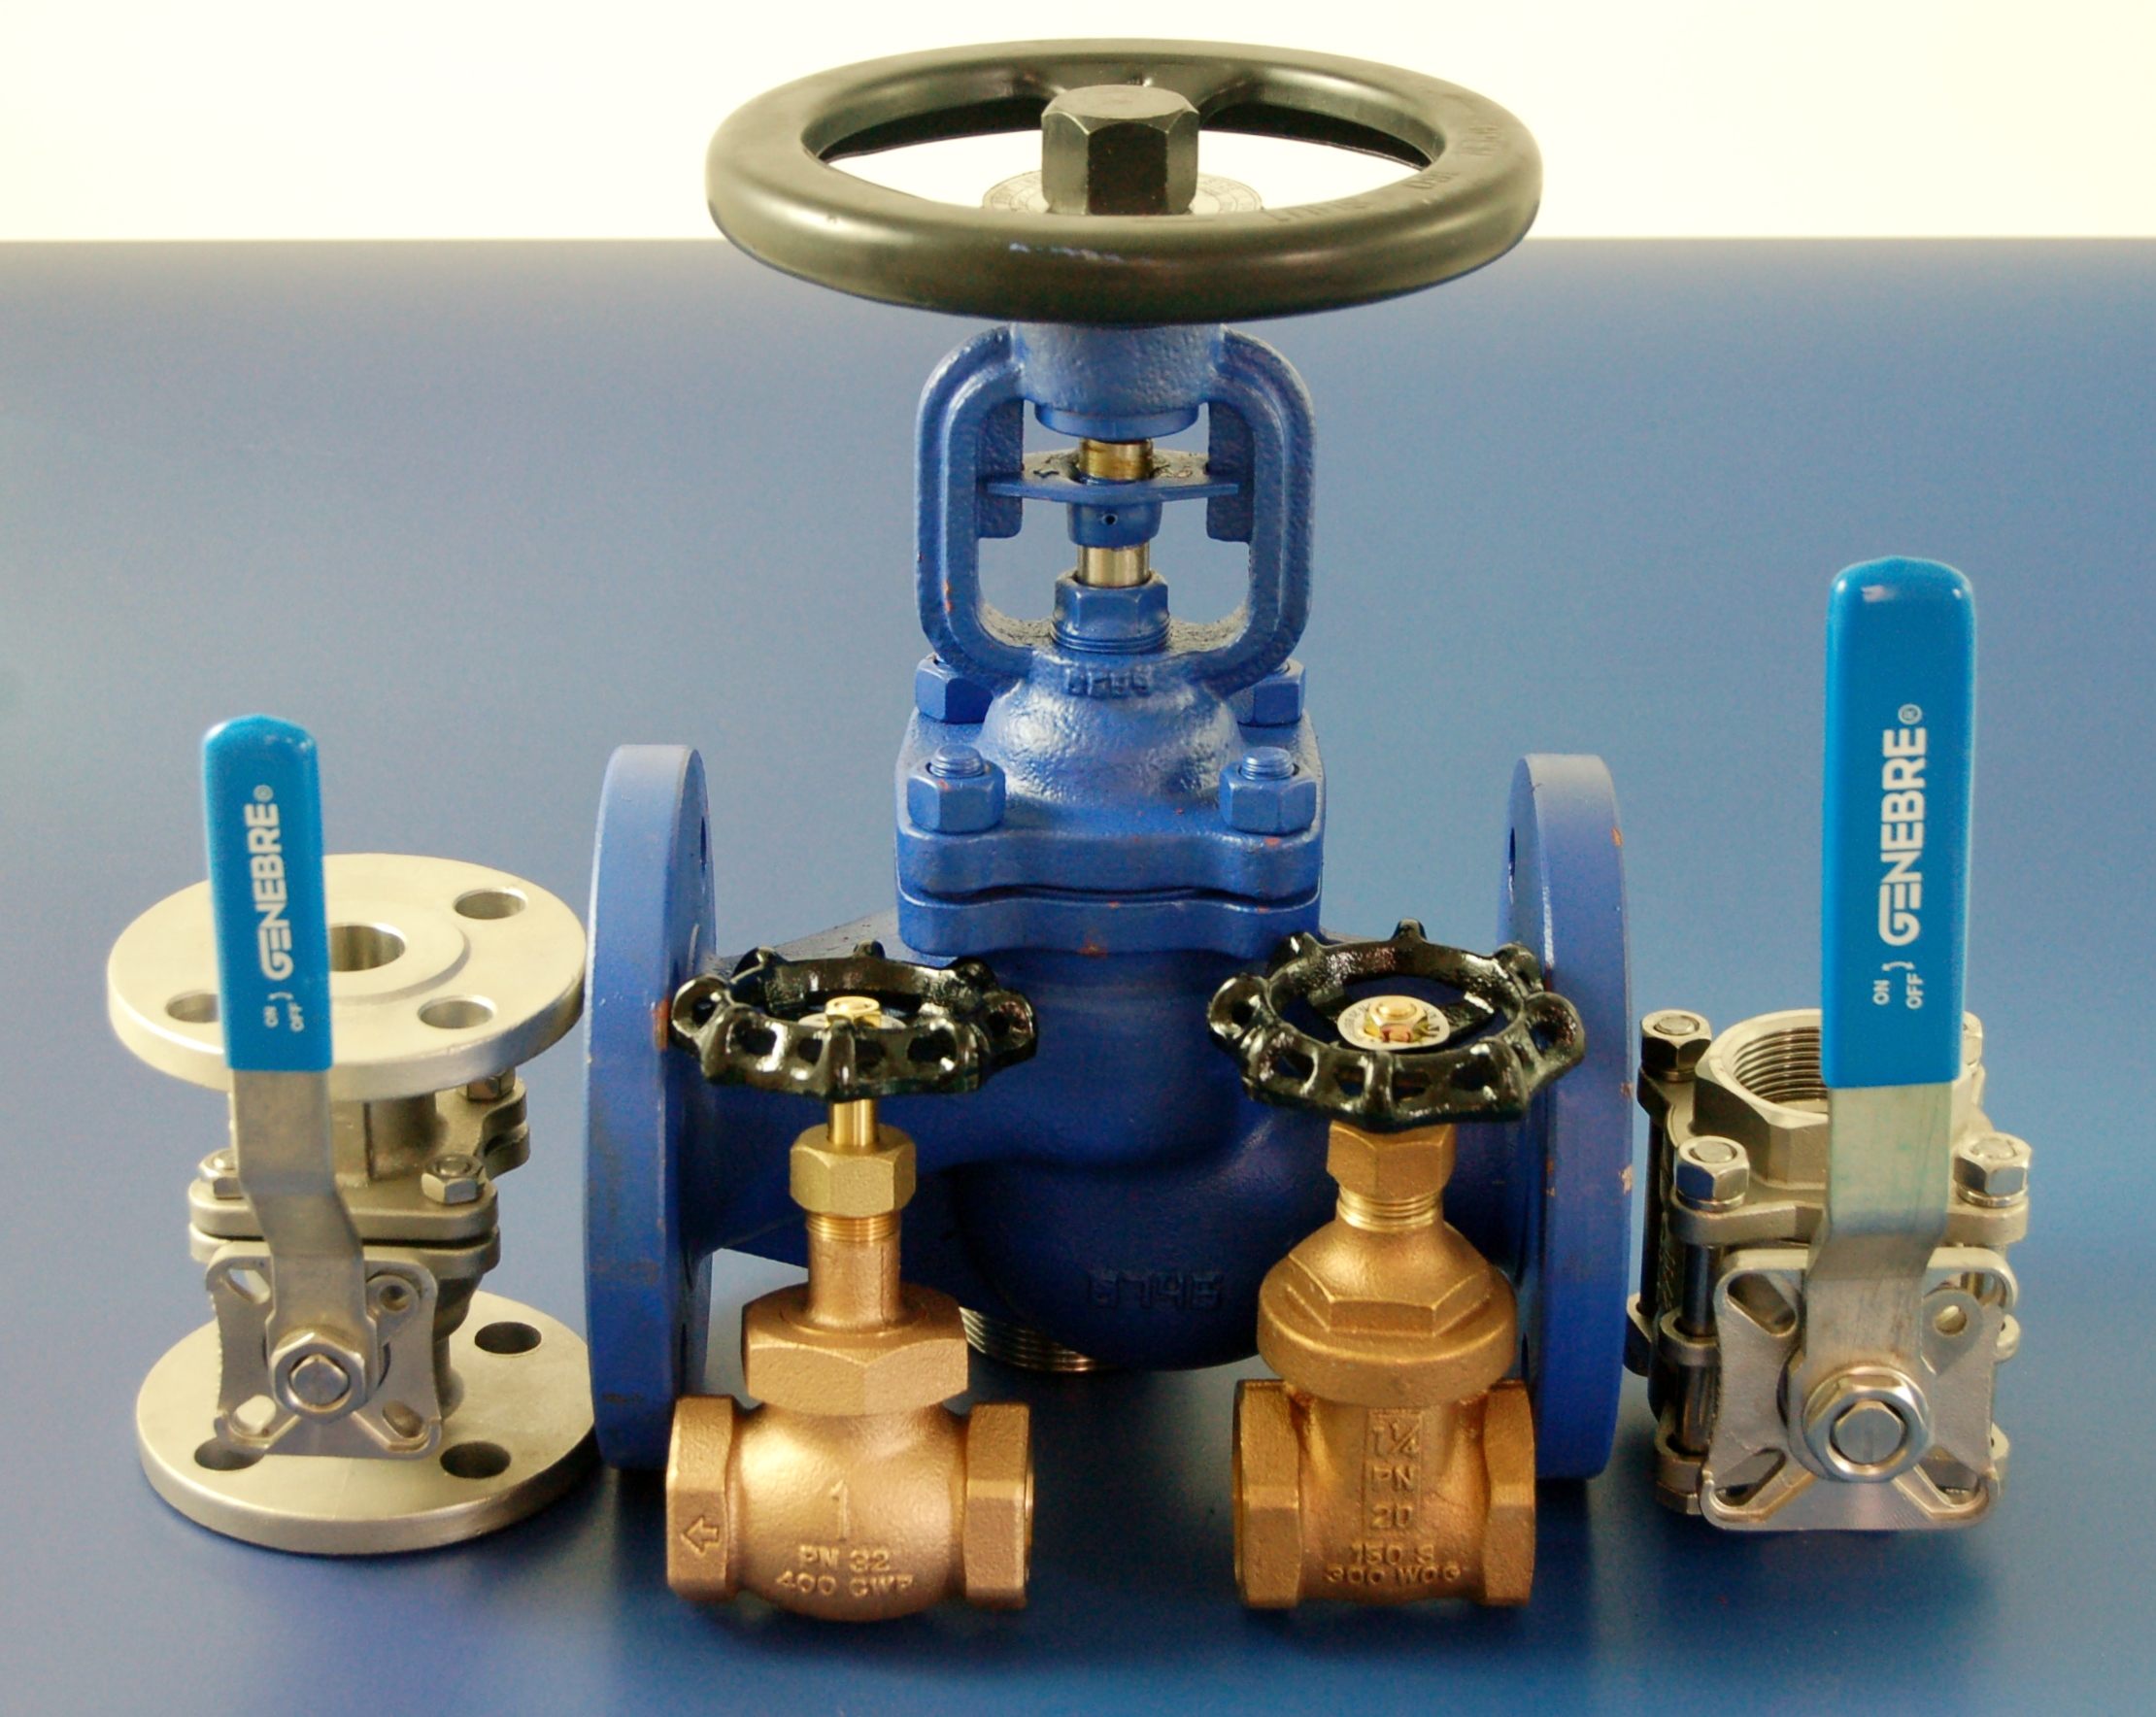 Steam Stop Valves from Besseges, (Valves, Tubes & Fittings